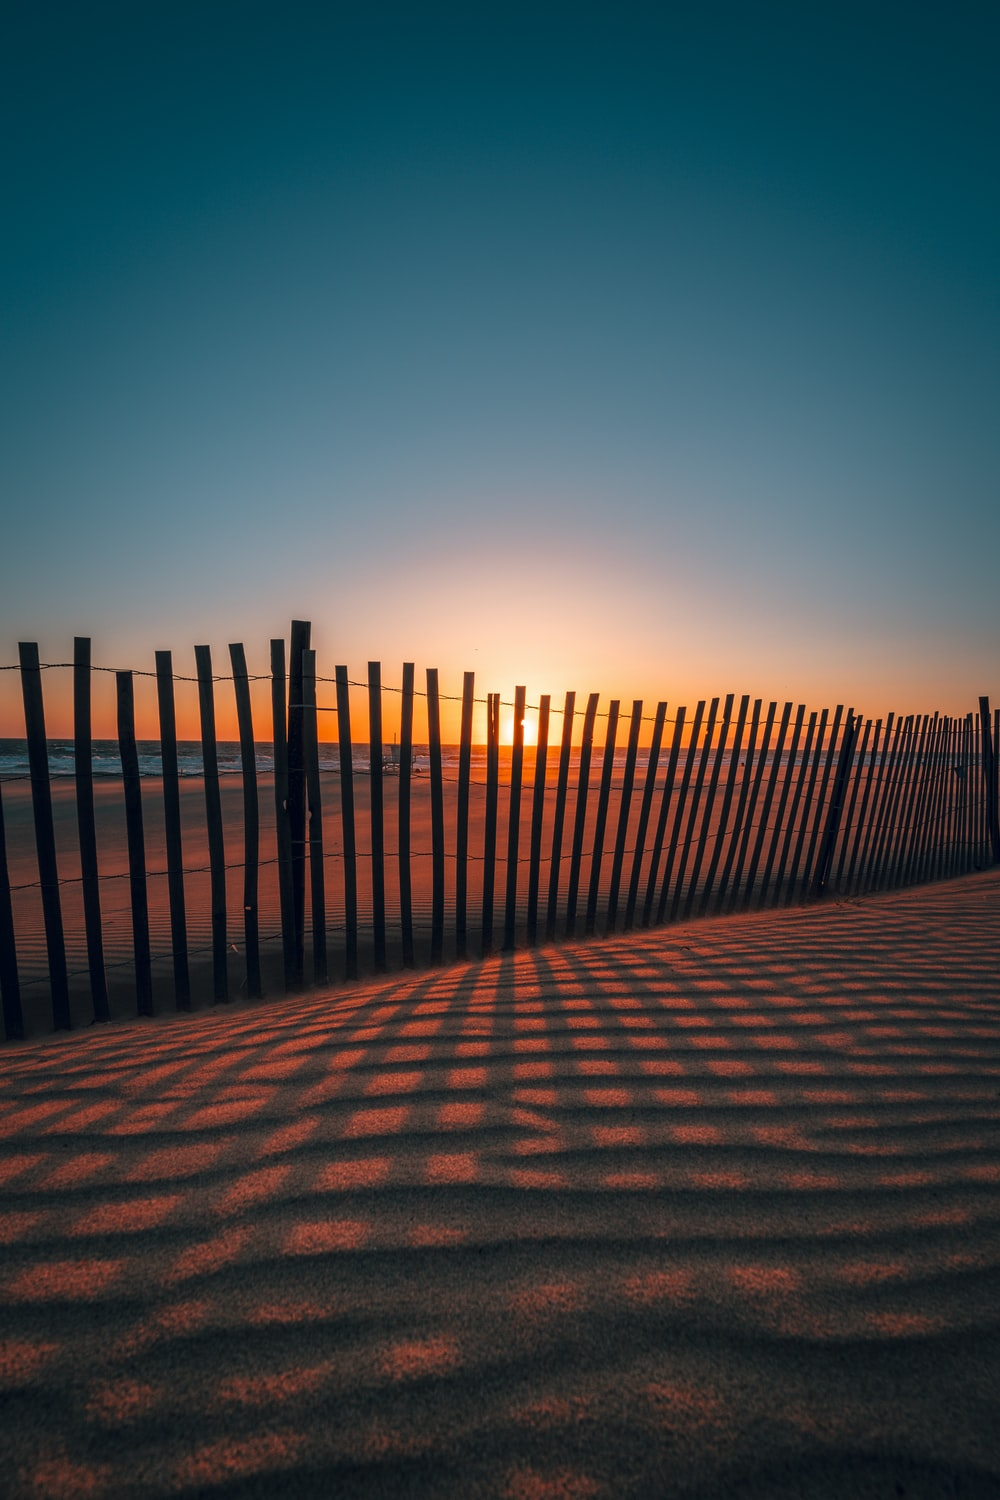 sunset as seen through brown wooden fences